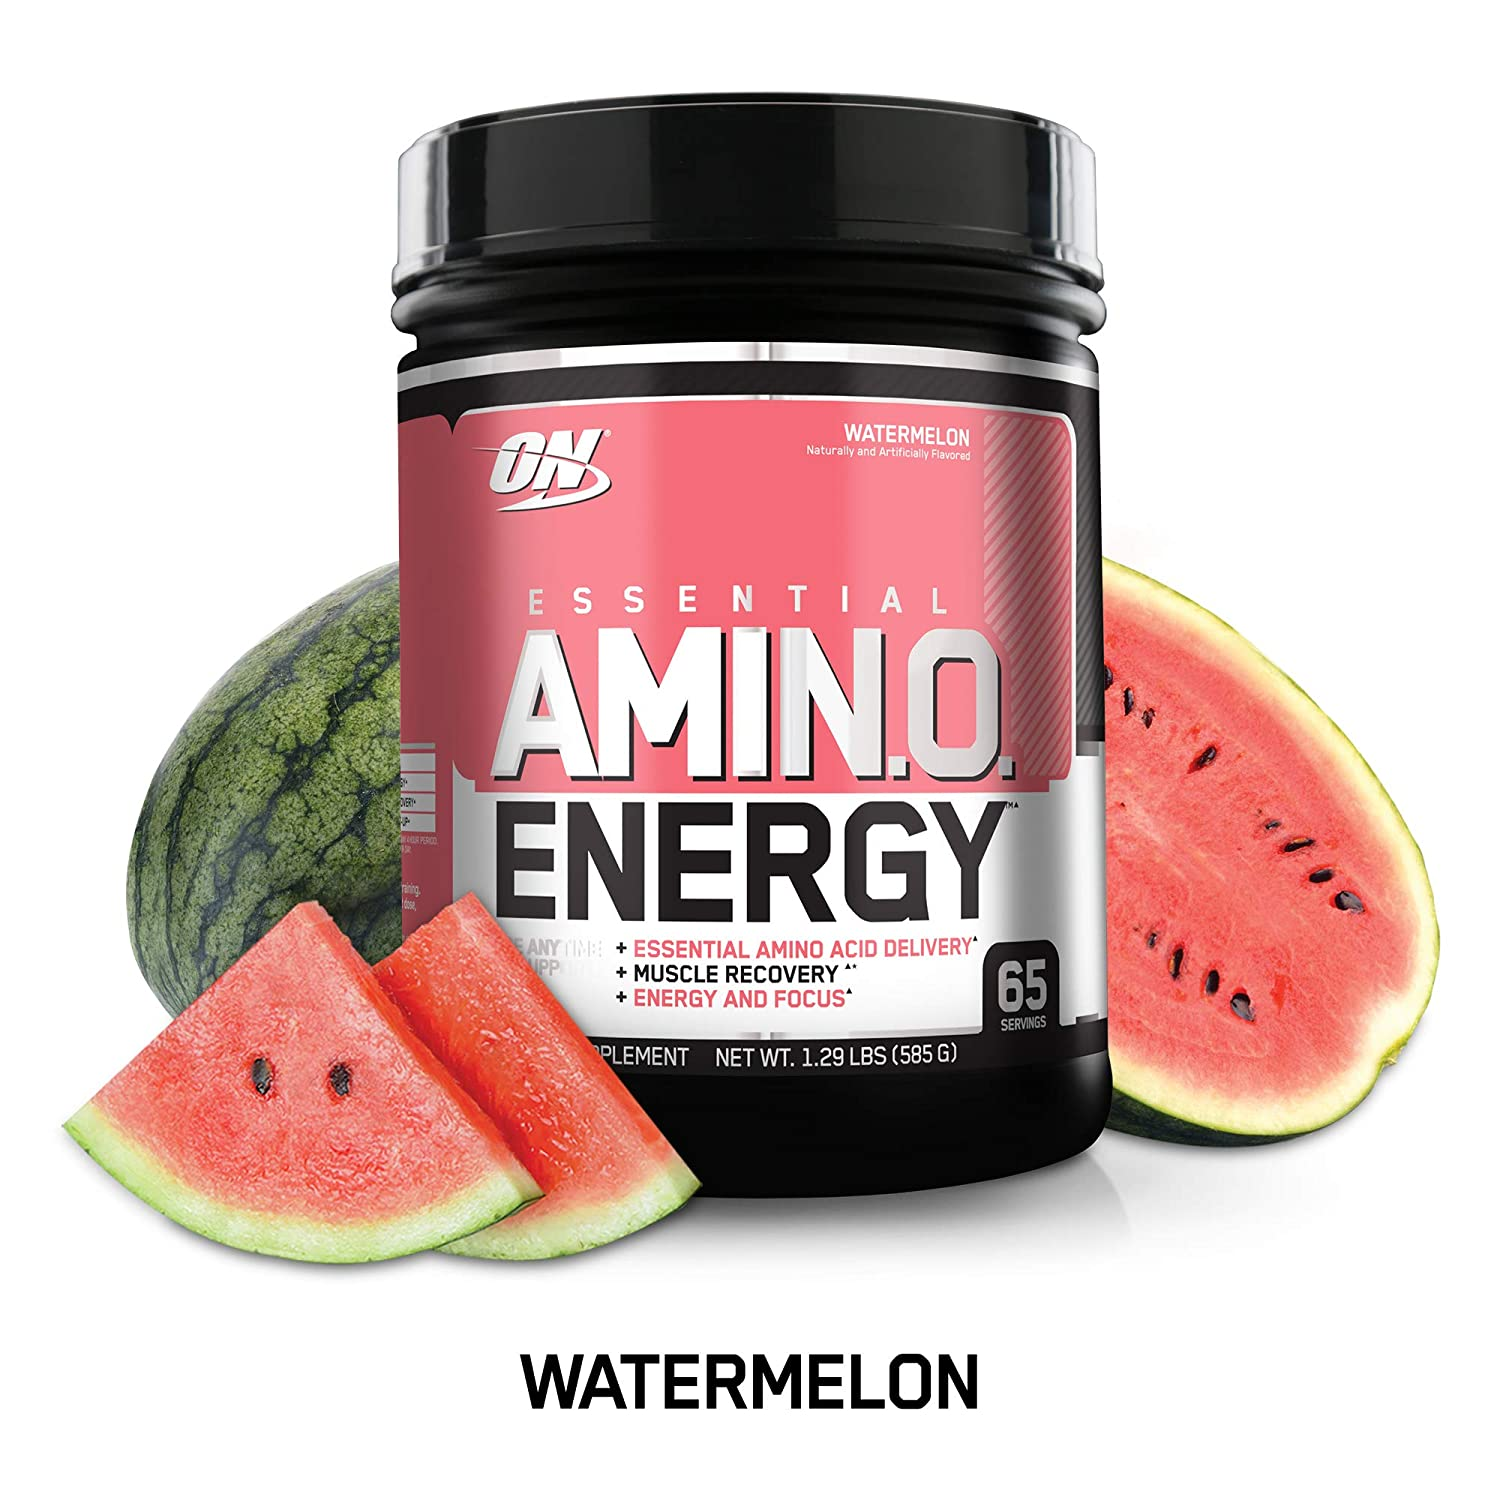 5. Optimum Nutrition Amino Energy